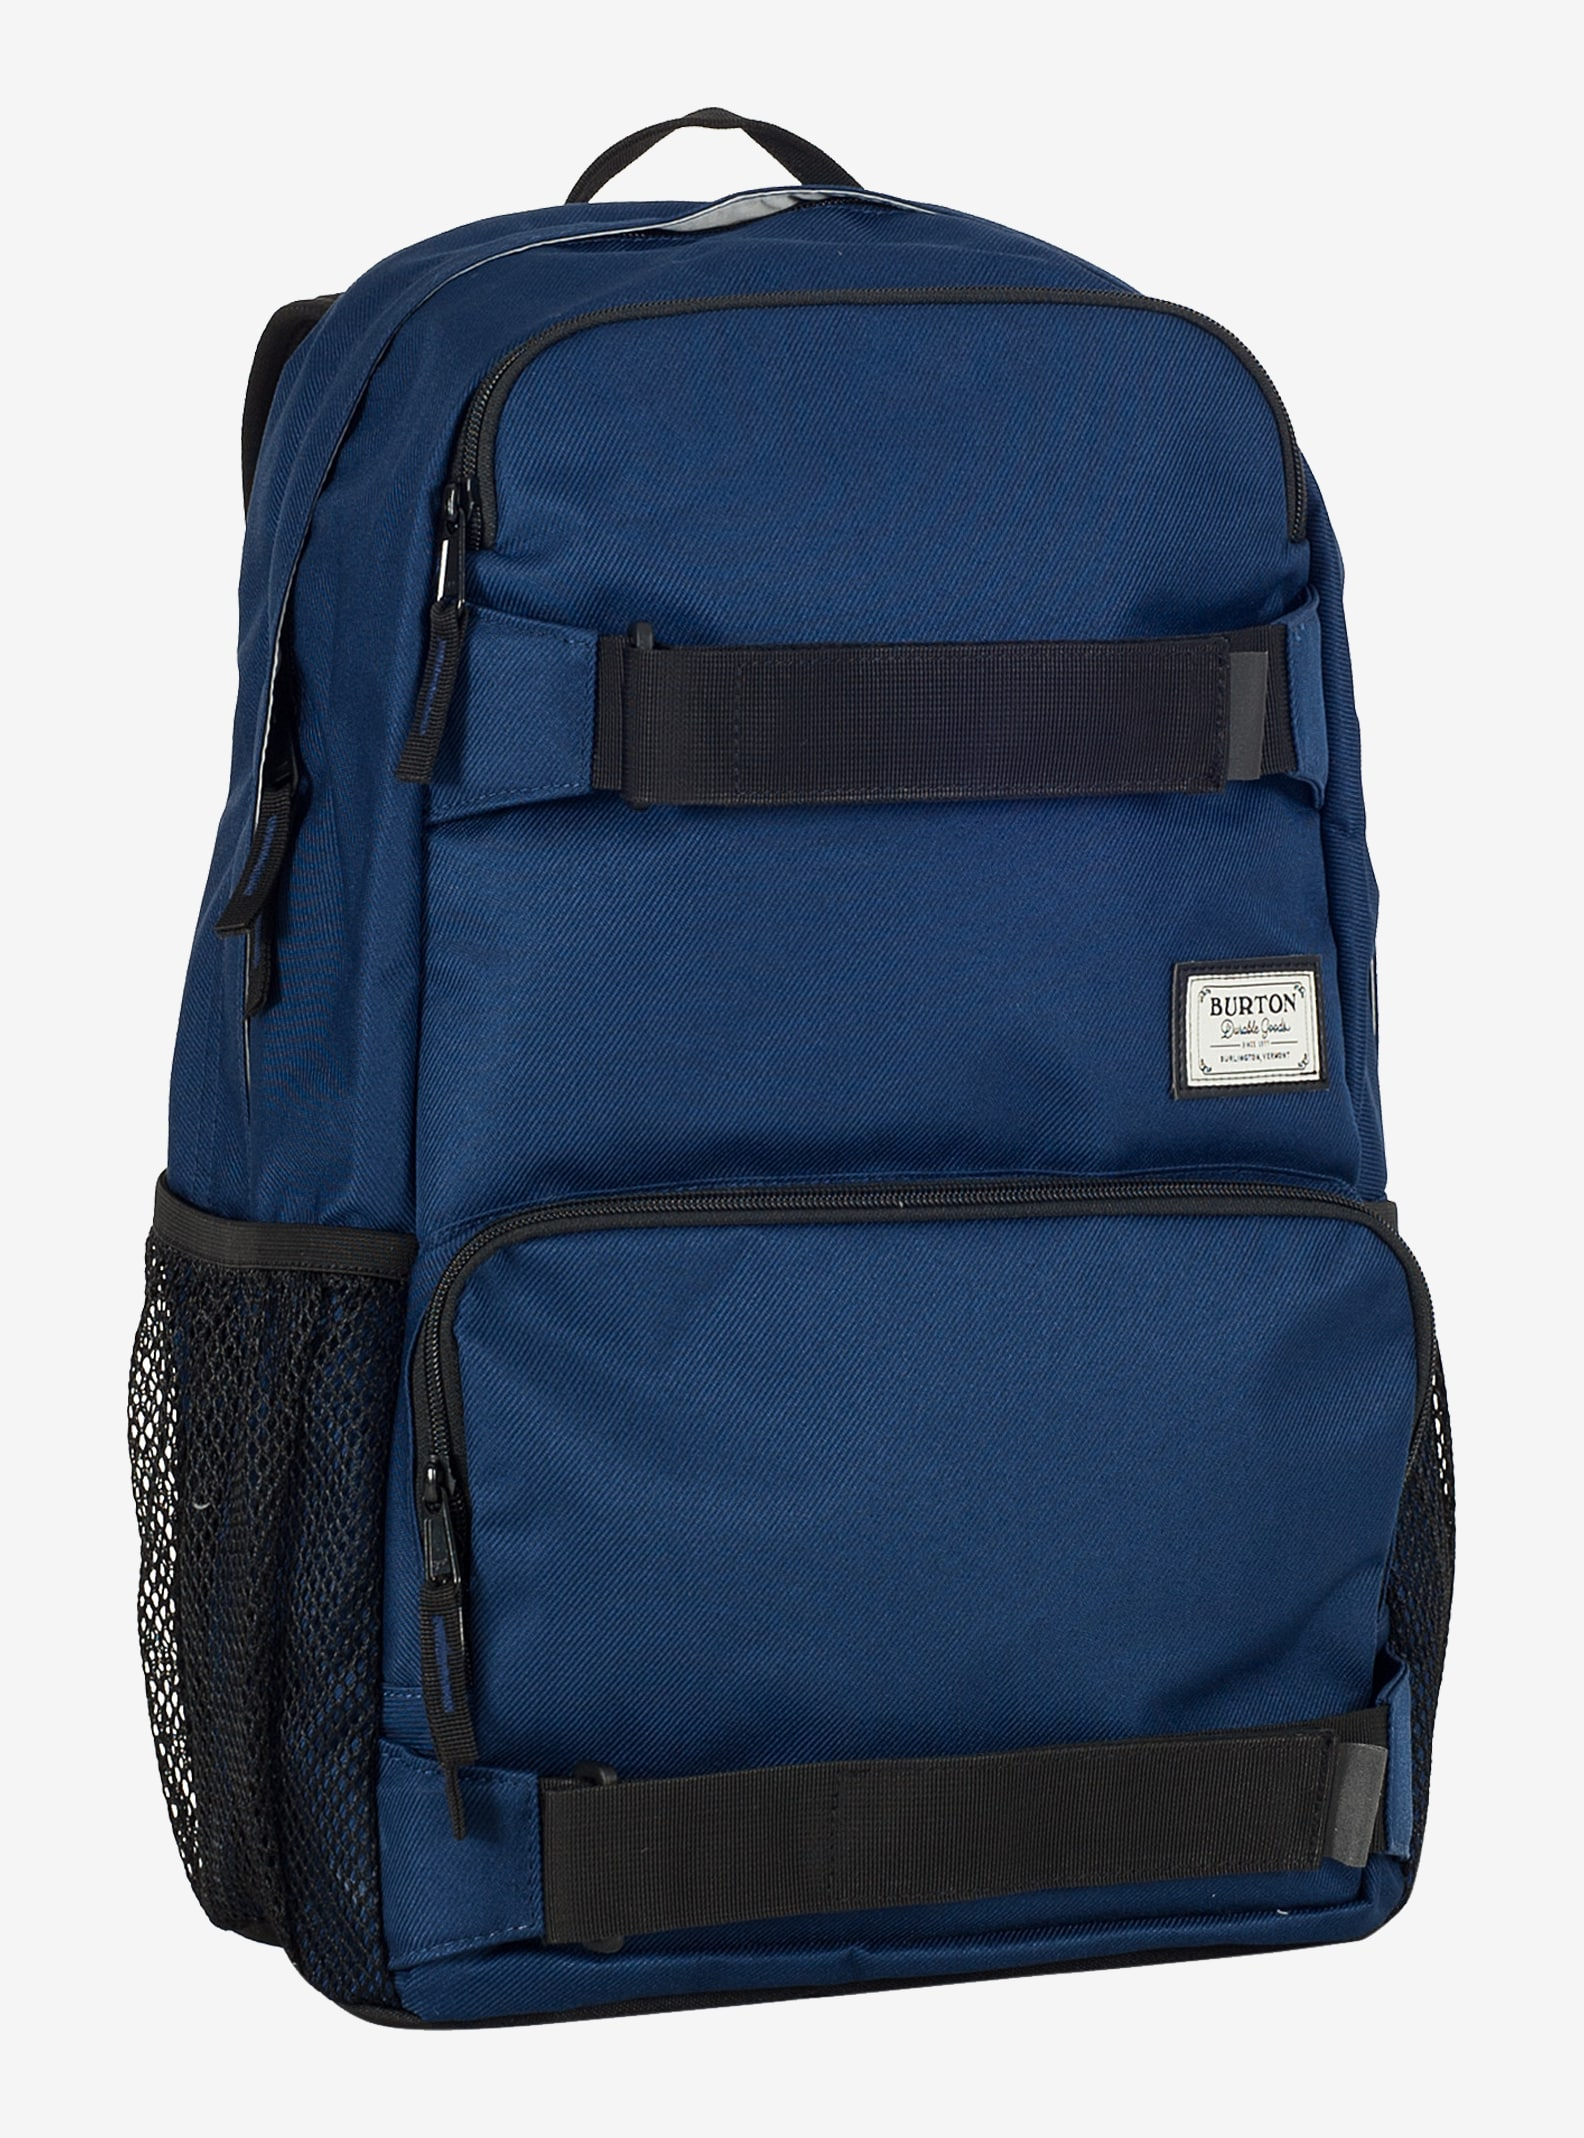 Burton Treble Yell Backpack shown in Medieval Blue Twill